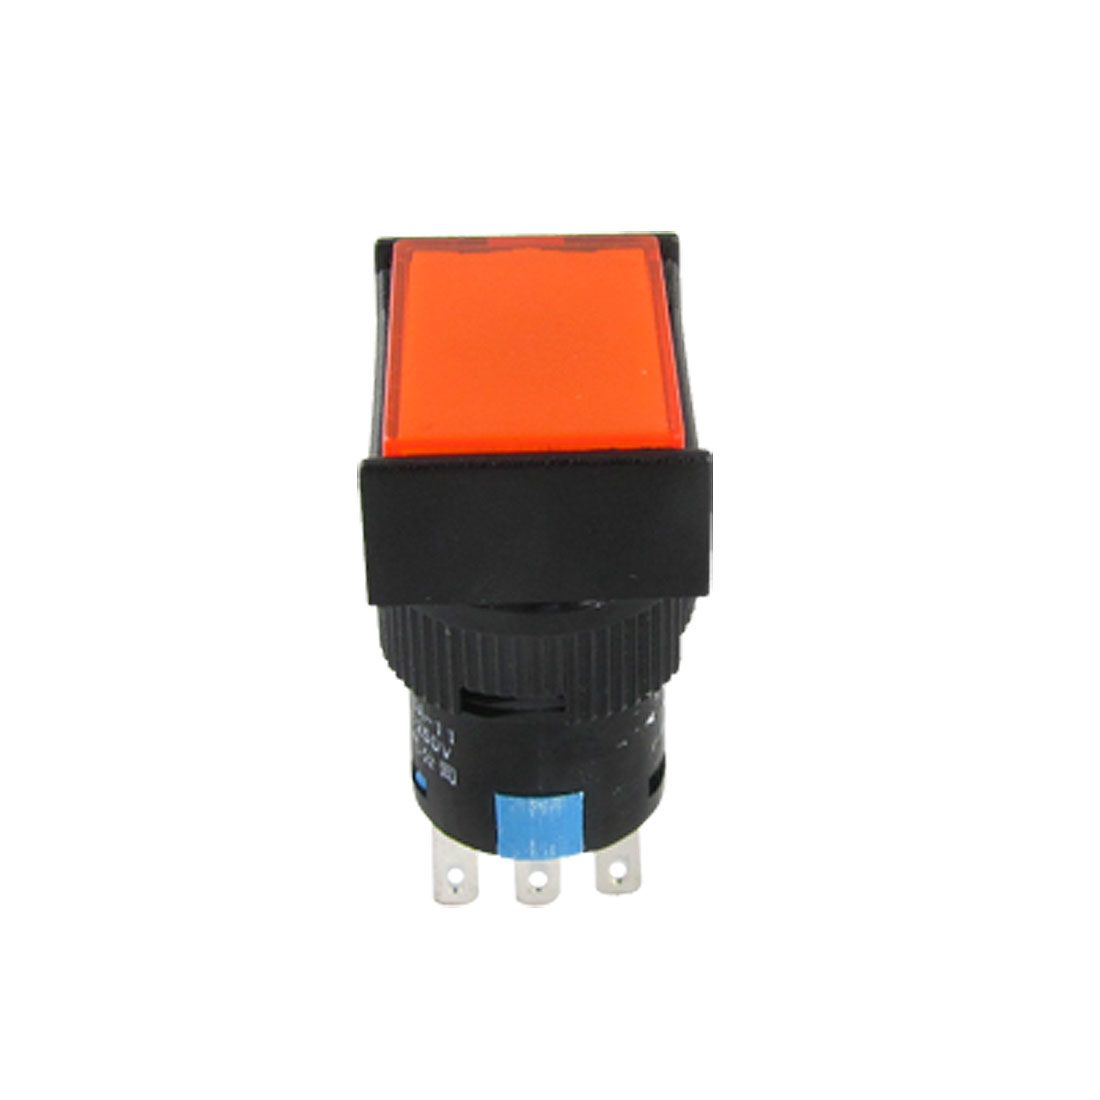 Rectangle Orange Button Black Push Switch Control 250V